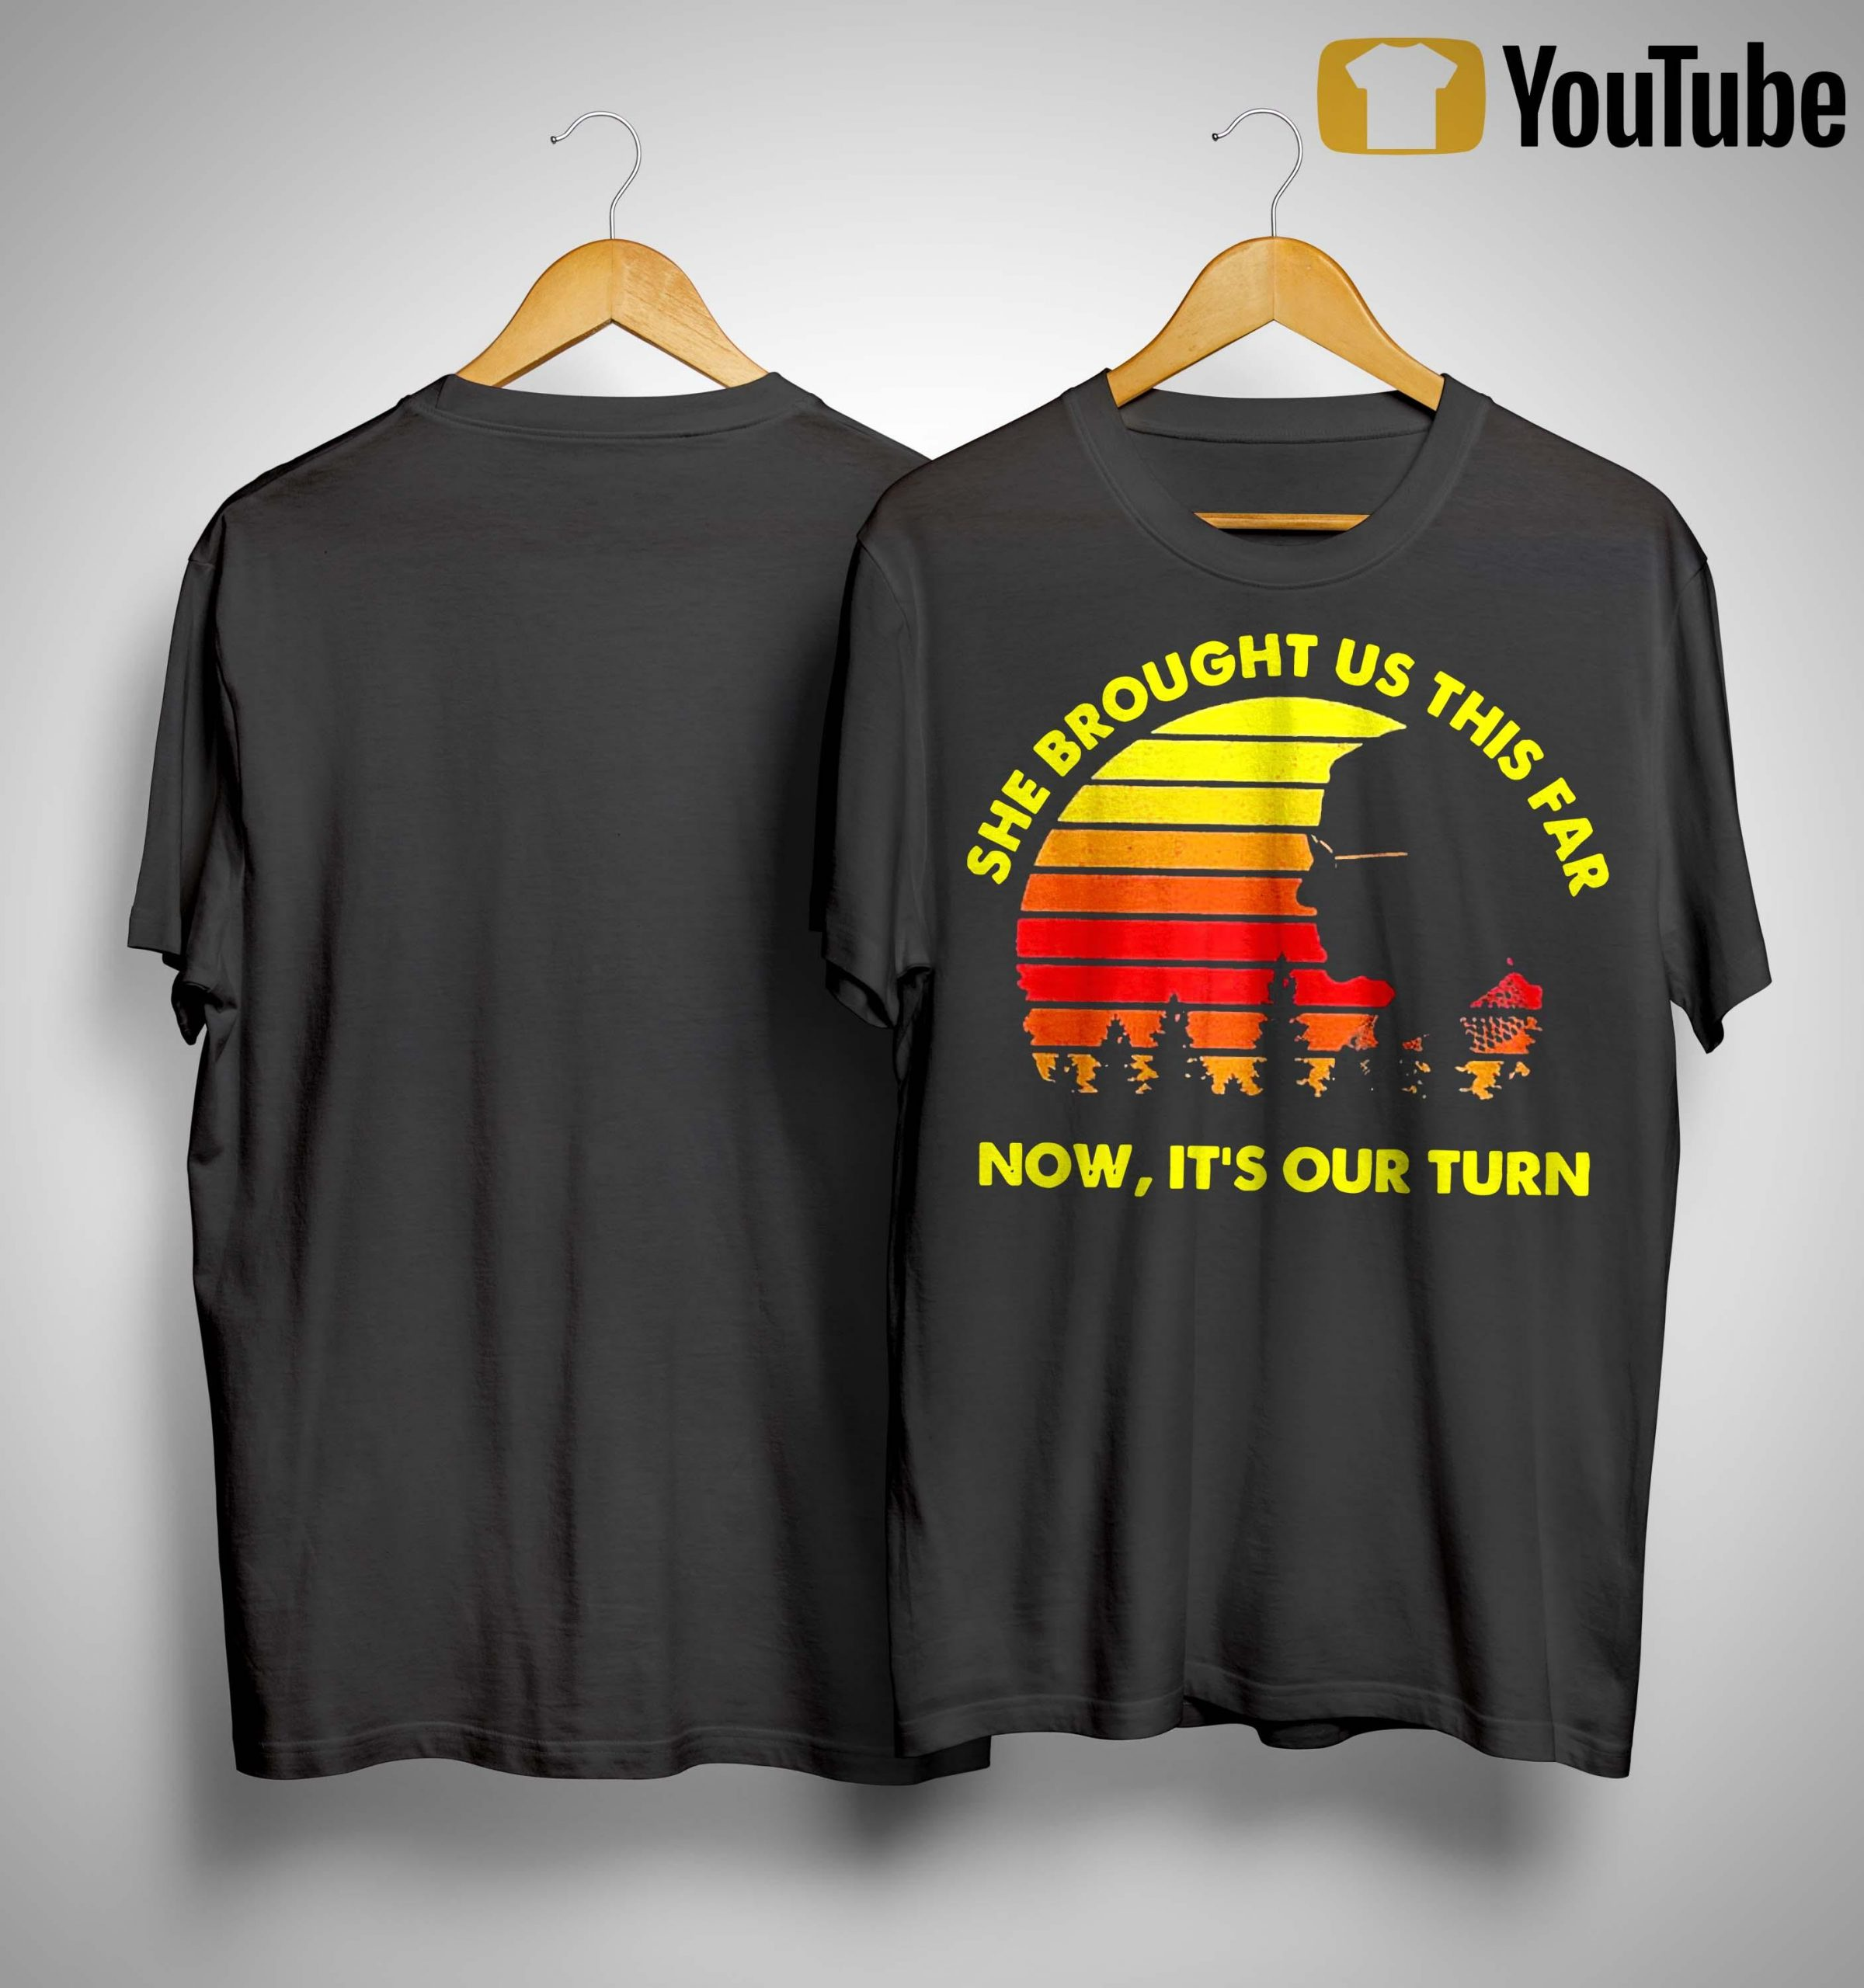 Vintage She Brought Us This Far Now It's Our Turn Shirt